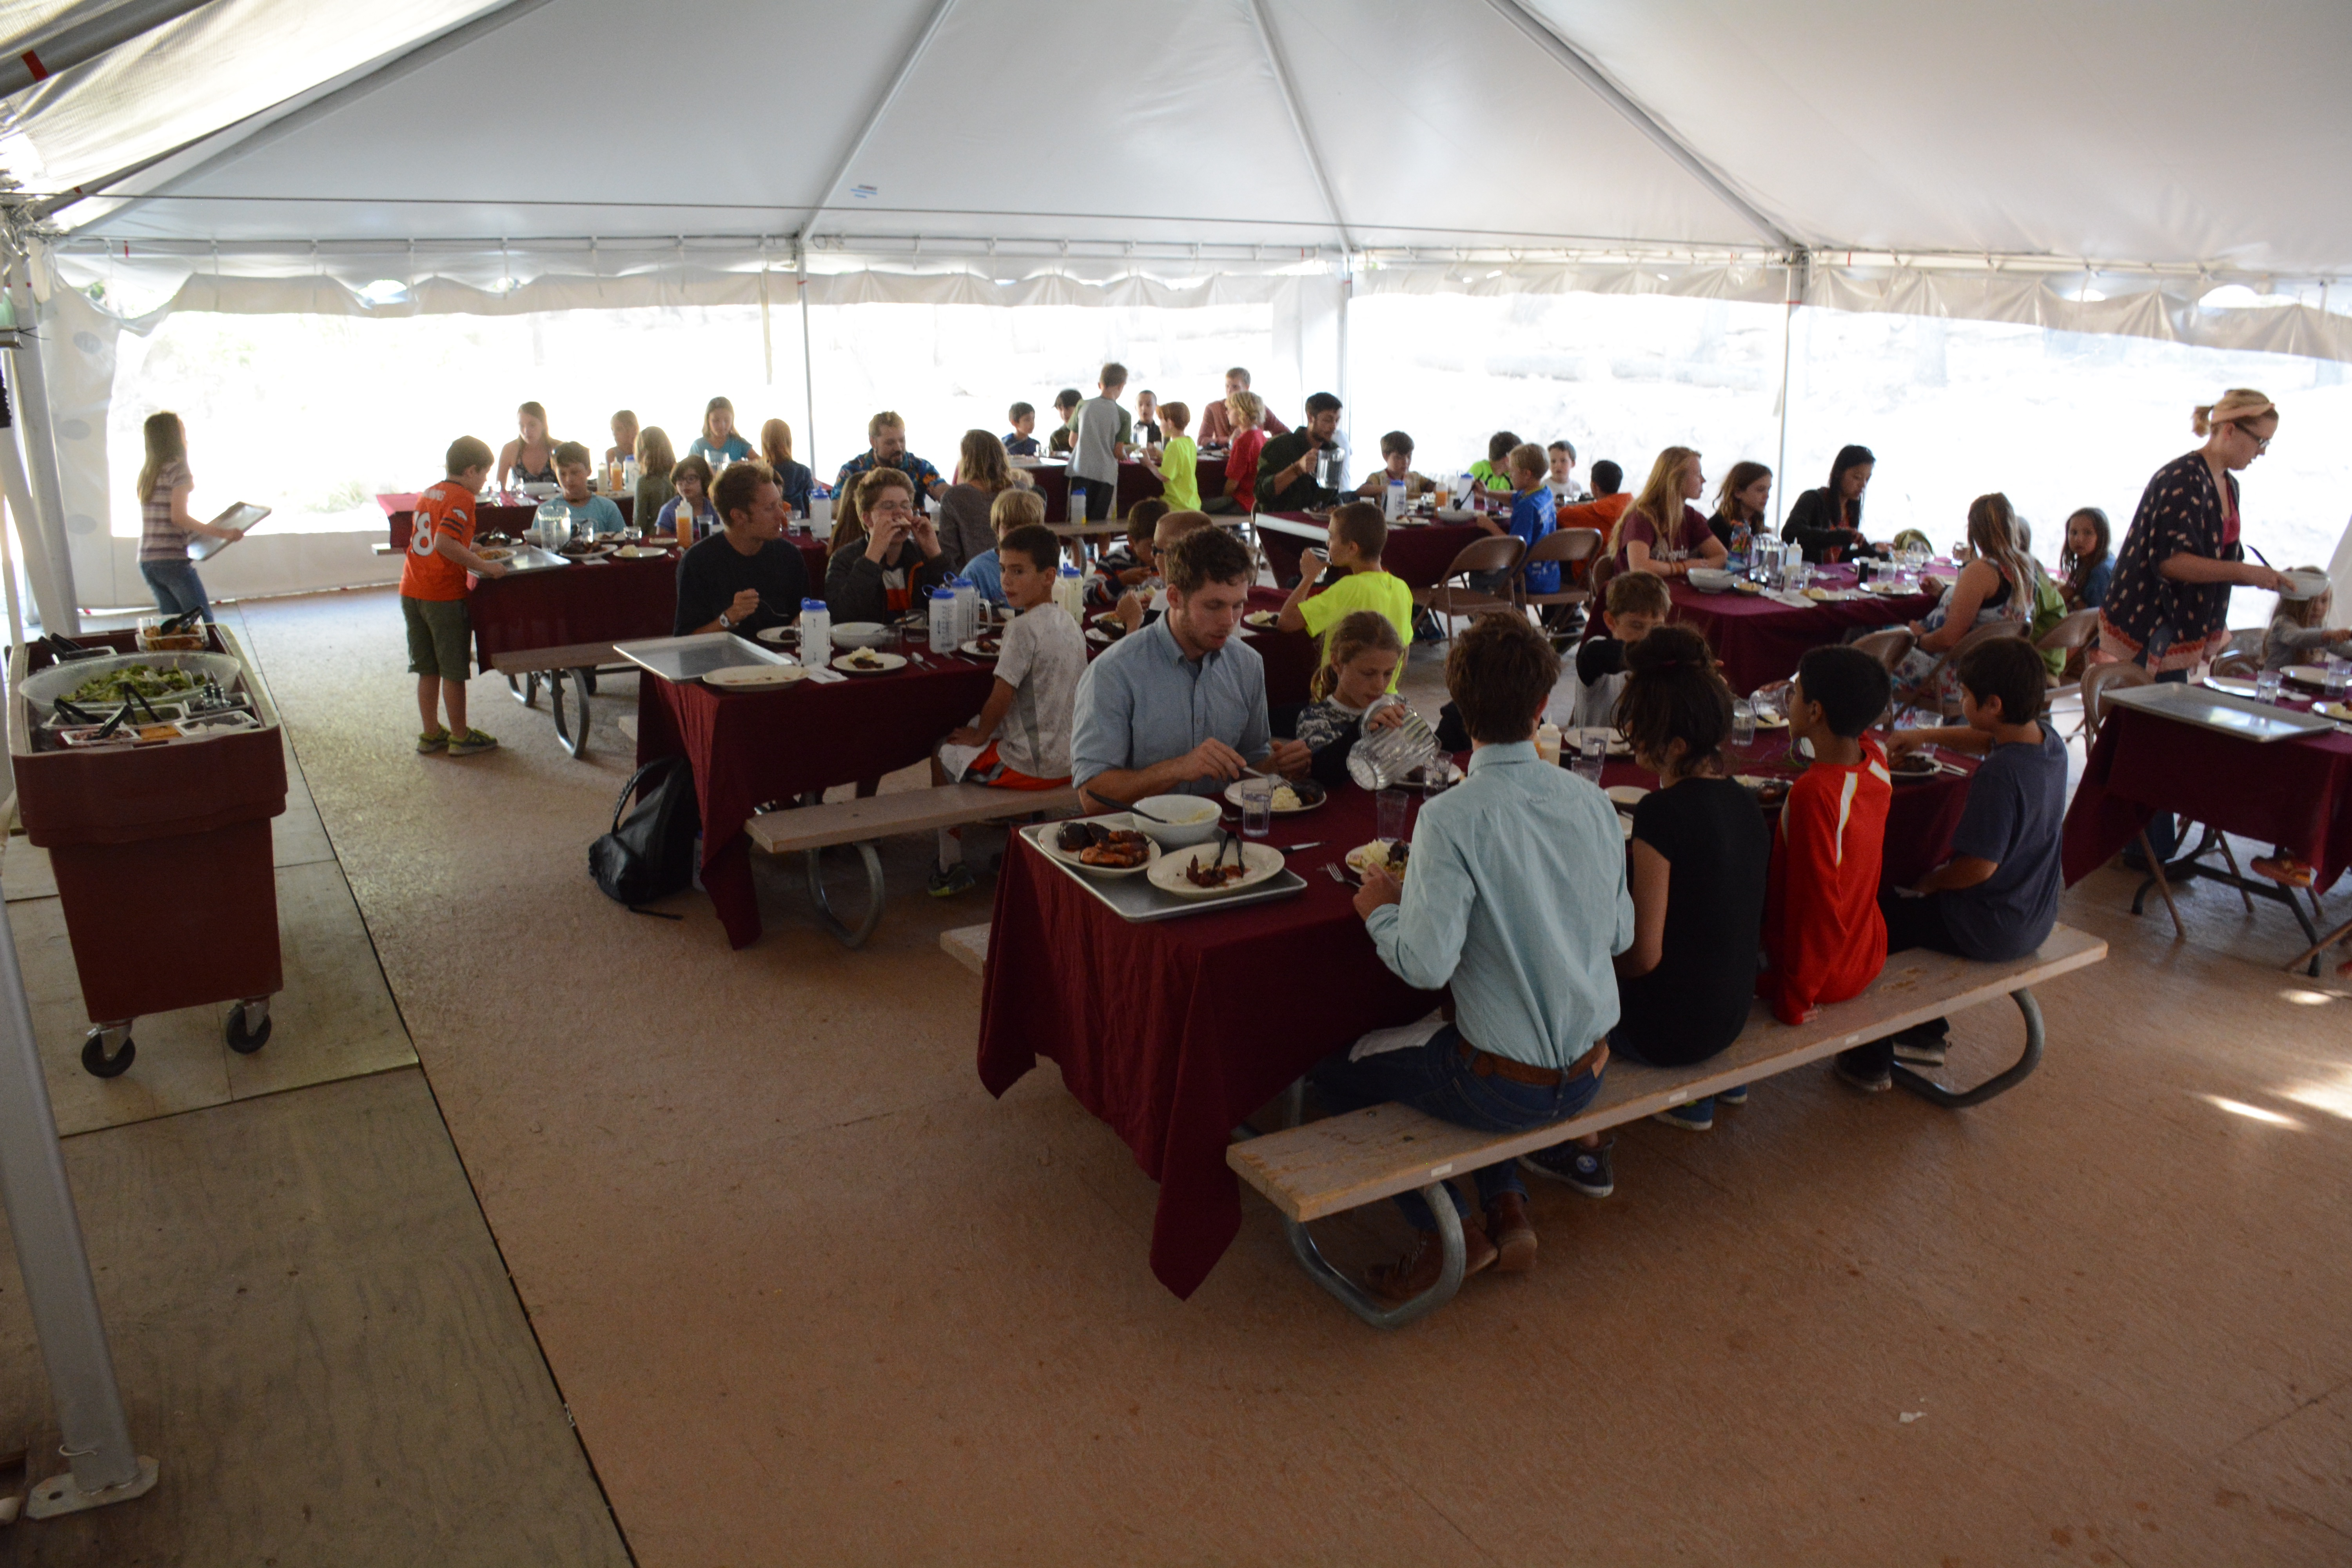 Image of our dining Pavilion